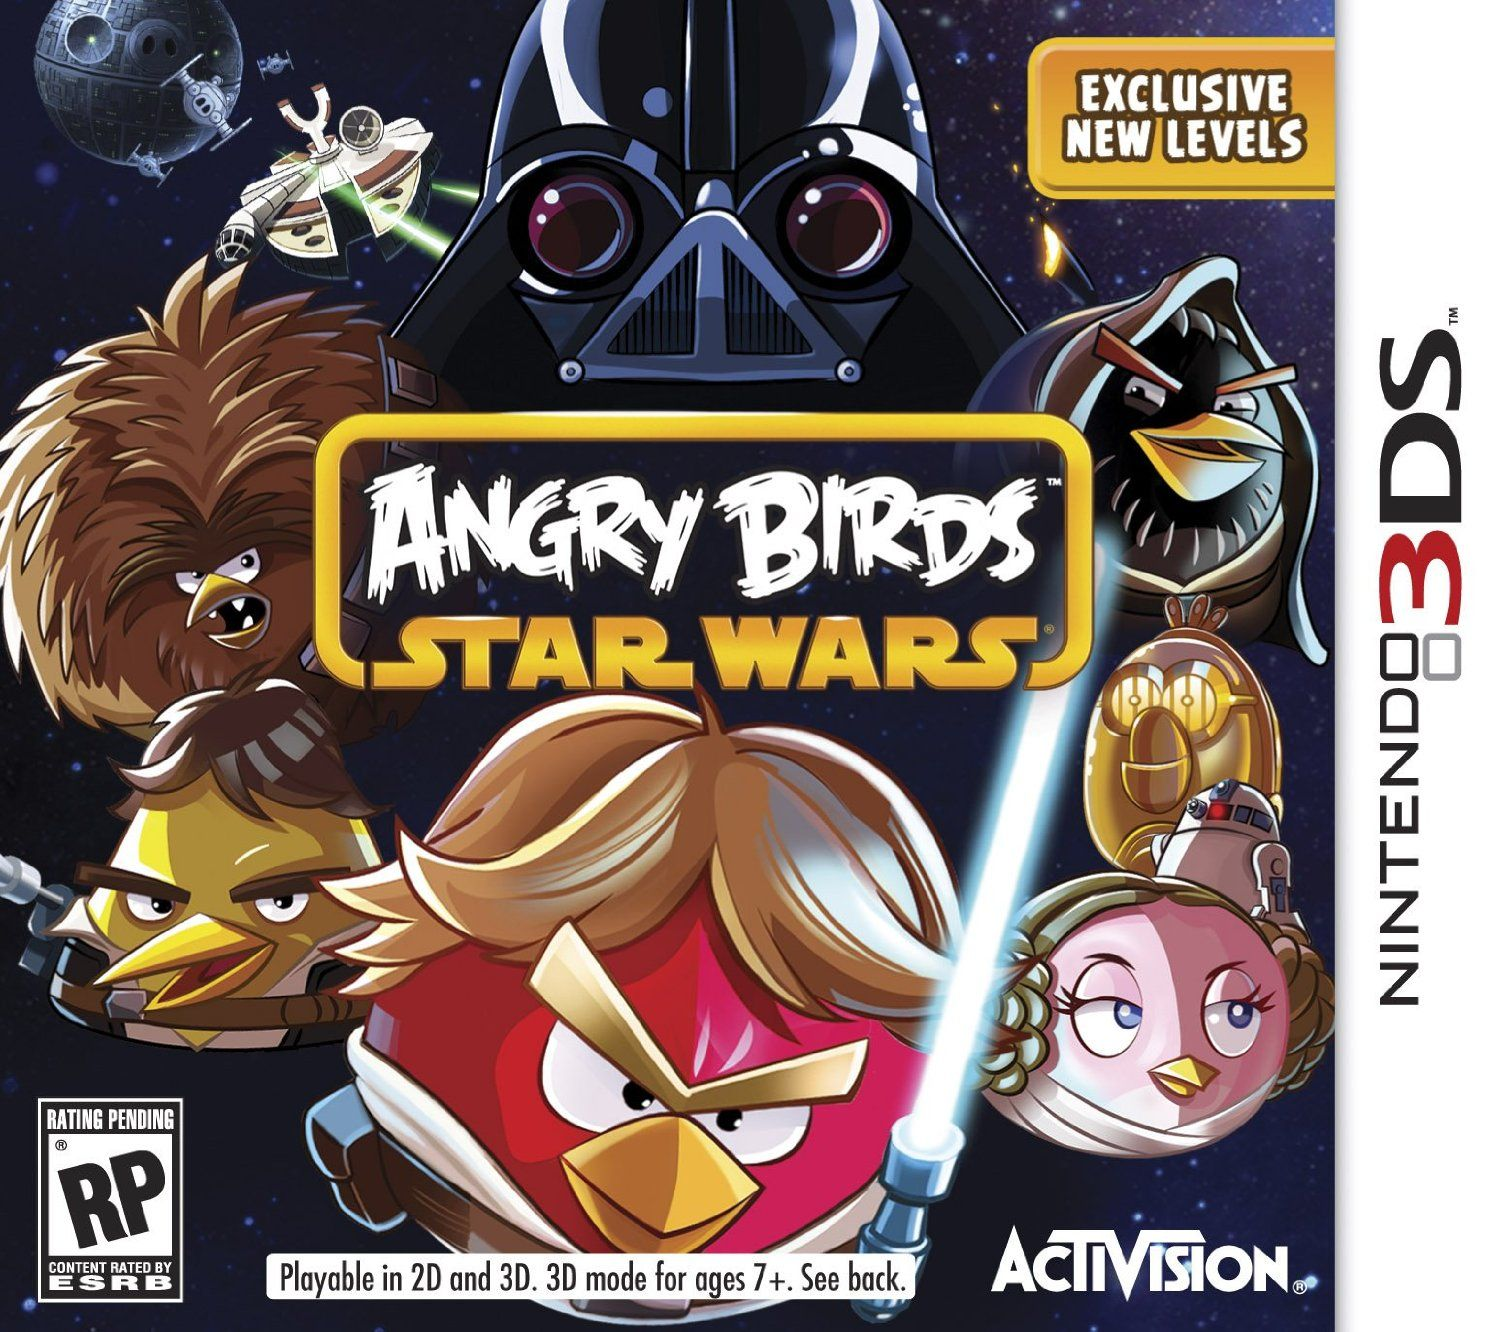 Angry Birds Star Wars Star Wars Xbox Star Wars Xbox One Angry